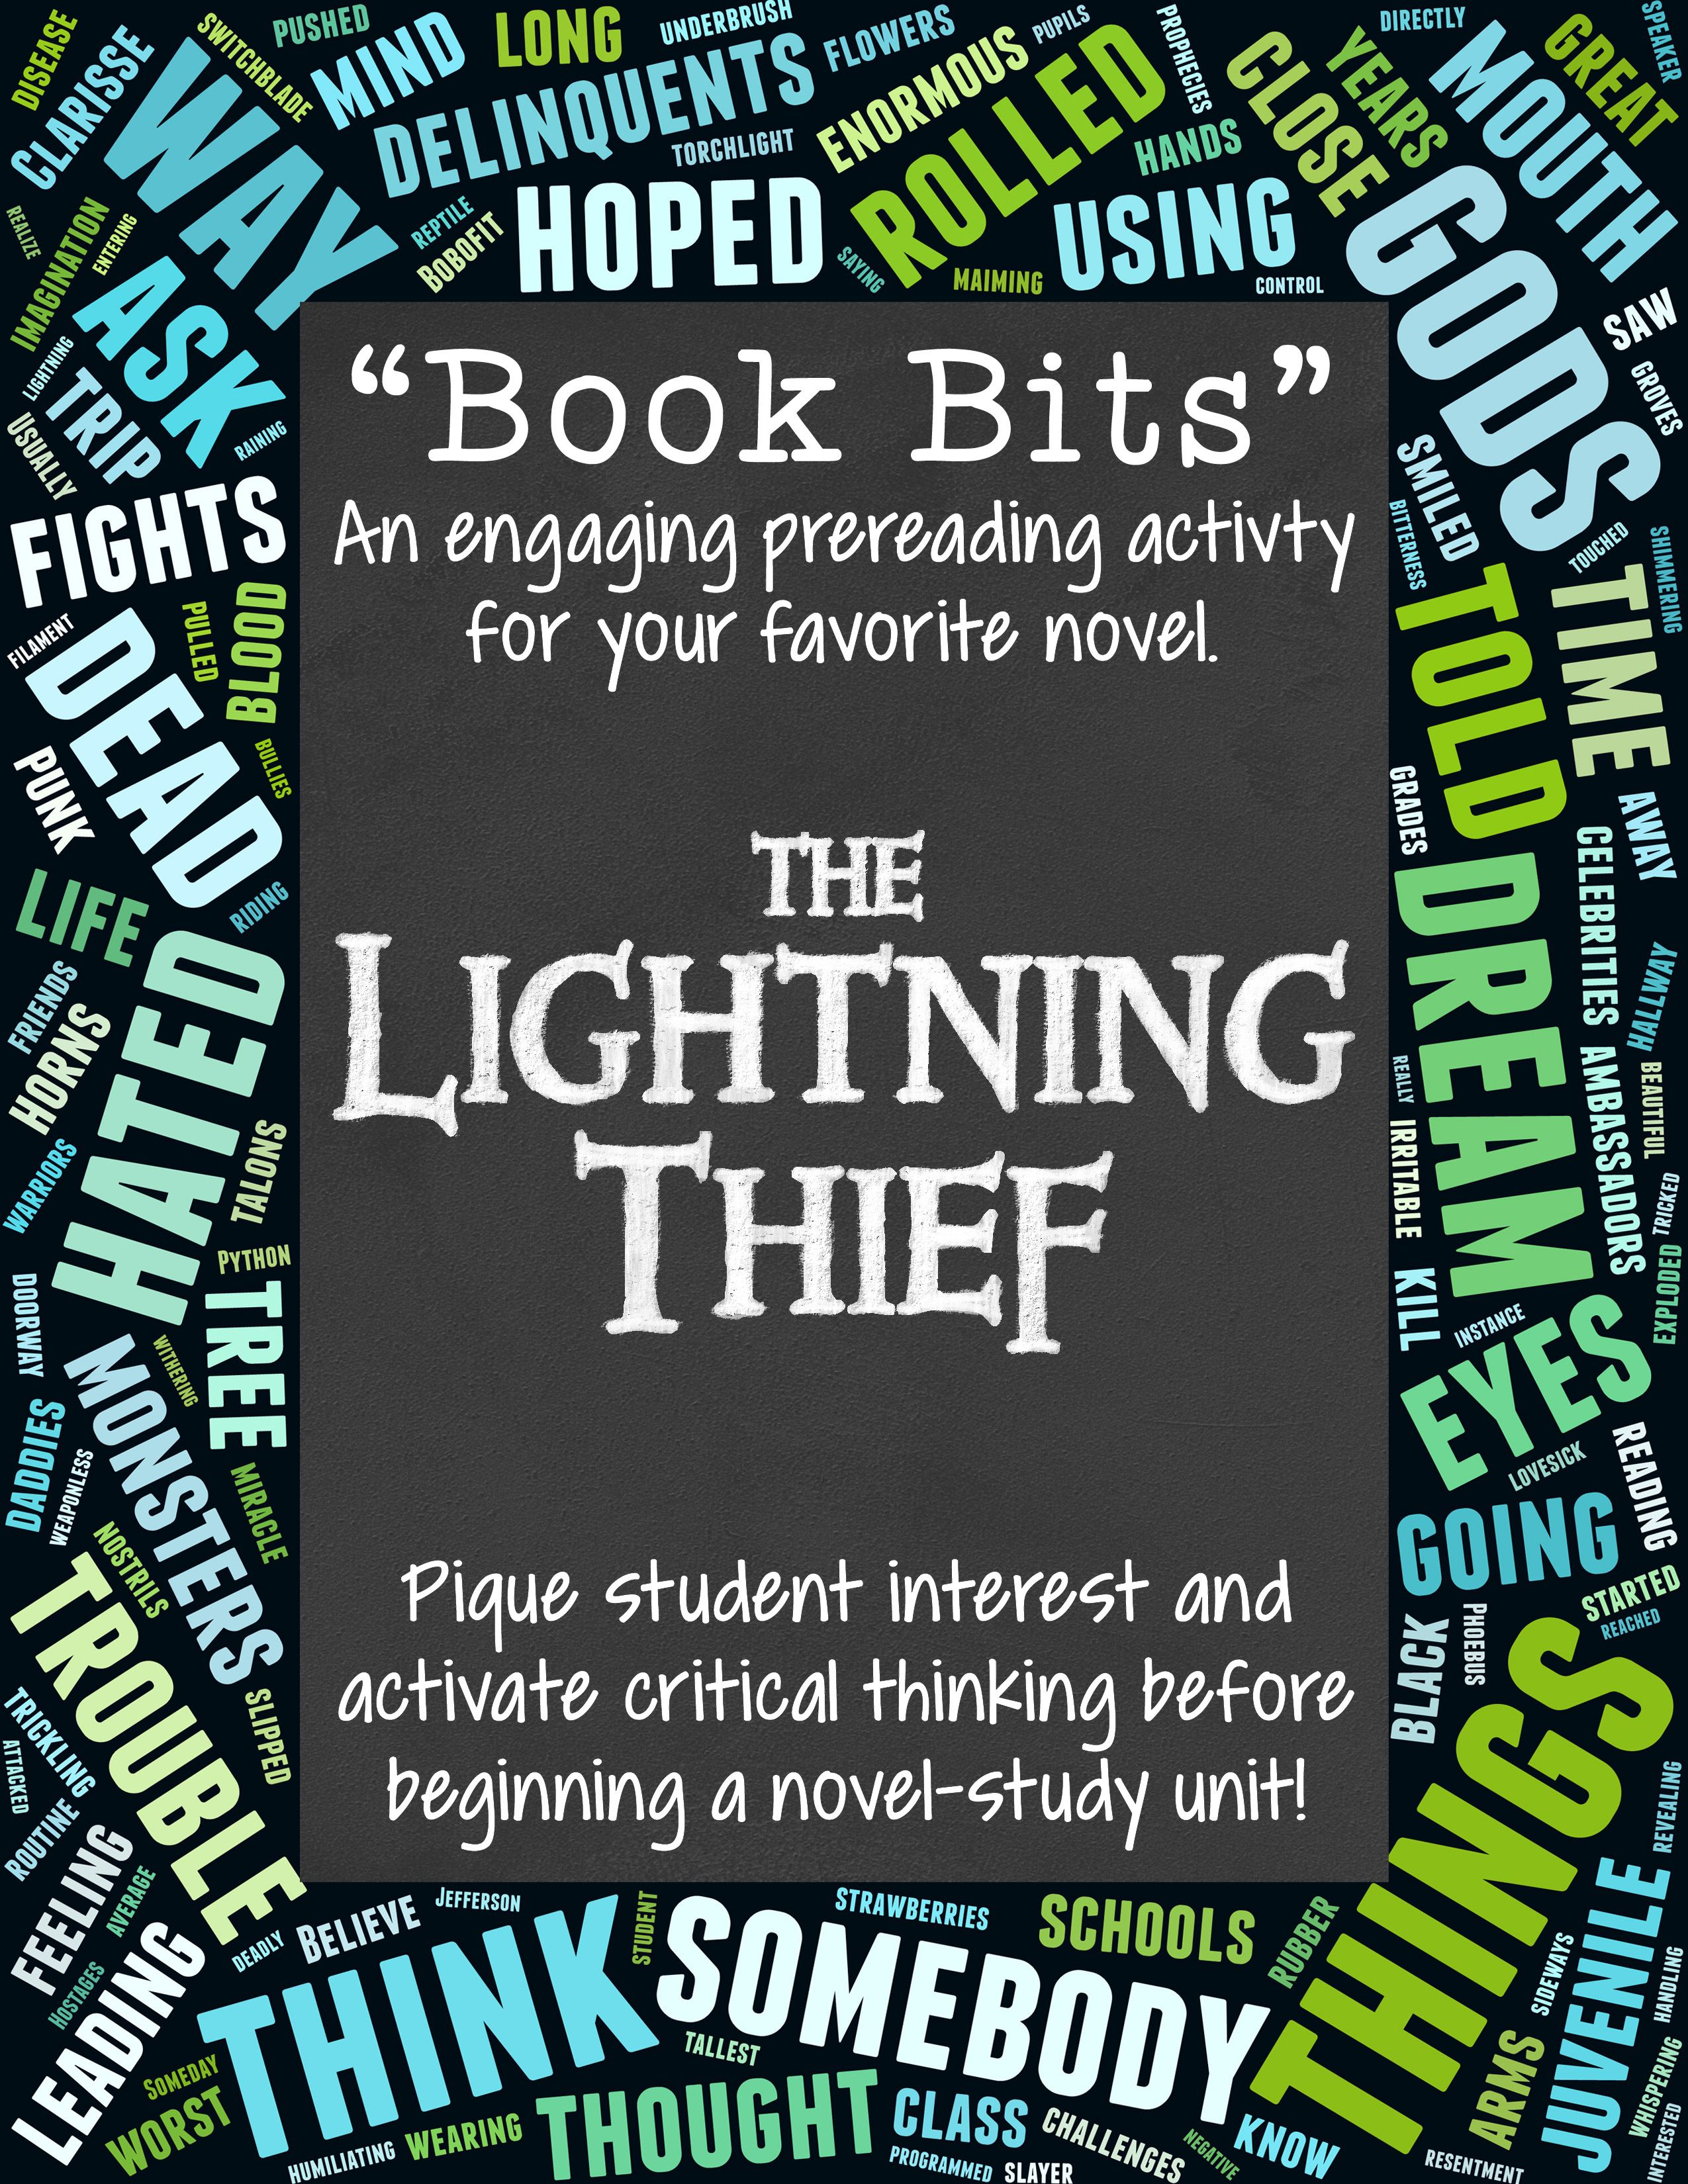 Book Bits A Fun Pre Reading Activity For The Lightning